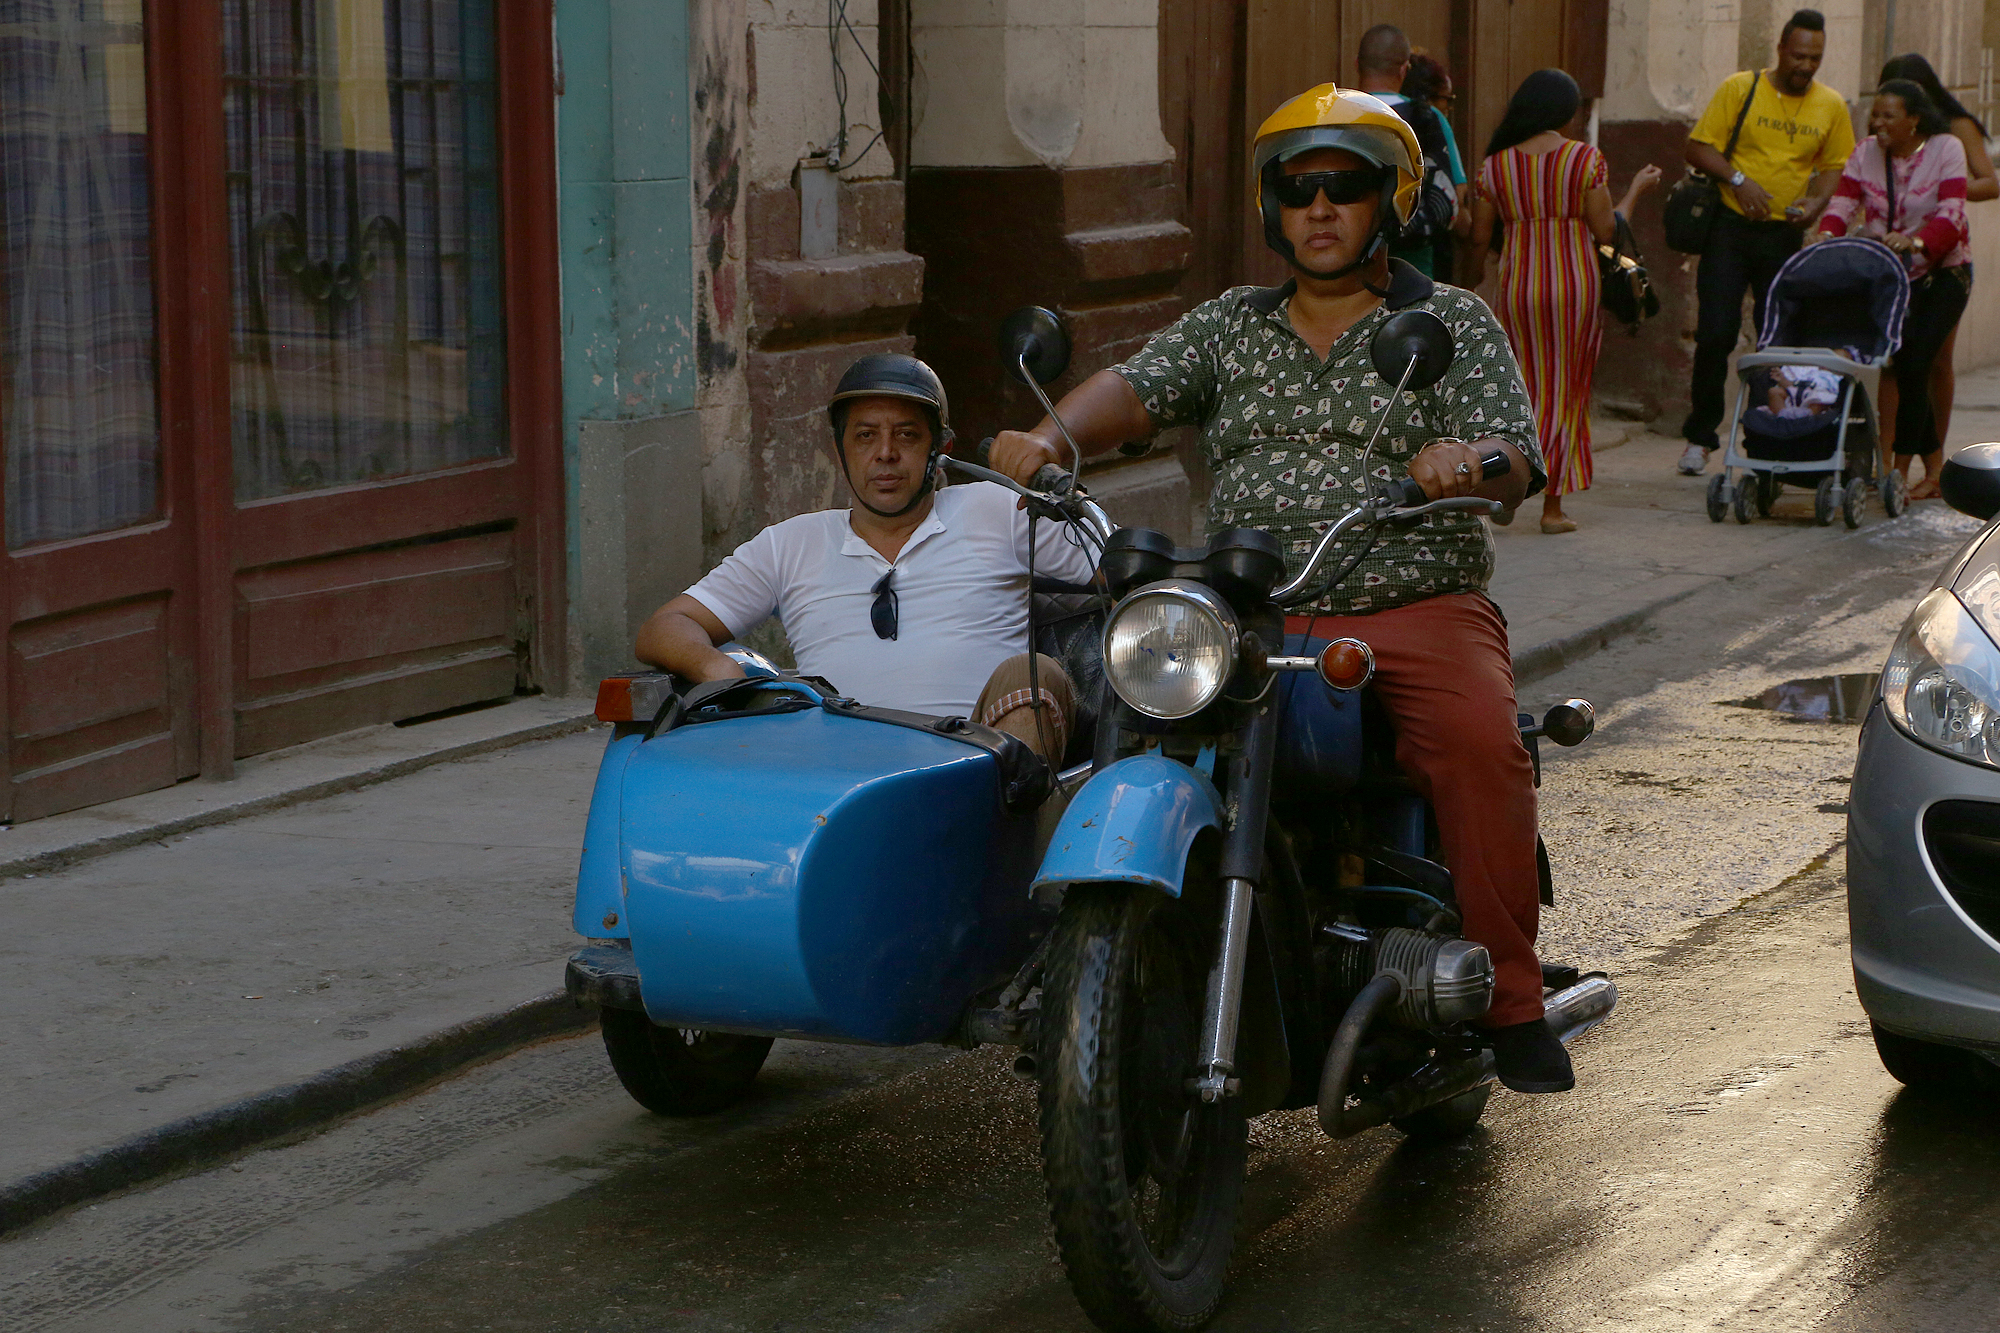 Motorcyclsit and sidecar passenger in Old Havana